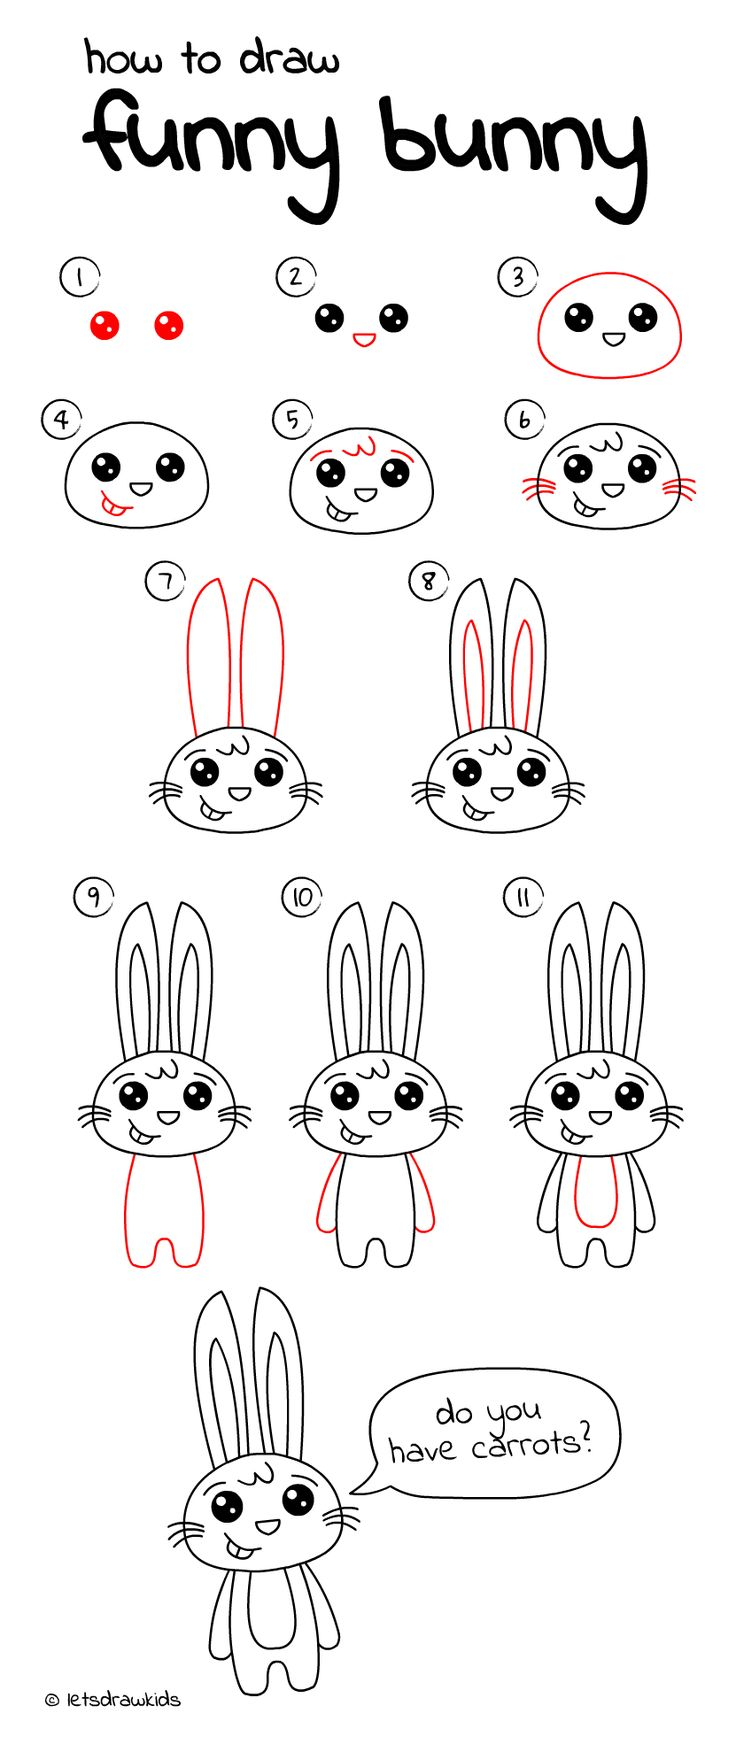 Uncategorized Easy Halloween Drawings Step Step best 25 drawing for kids ideas on pinterest easy drawings how to draw funny bunny step by perfect kids